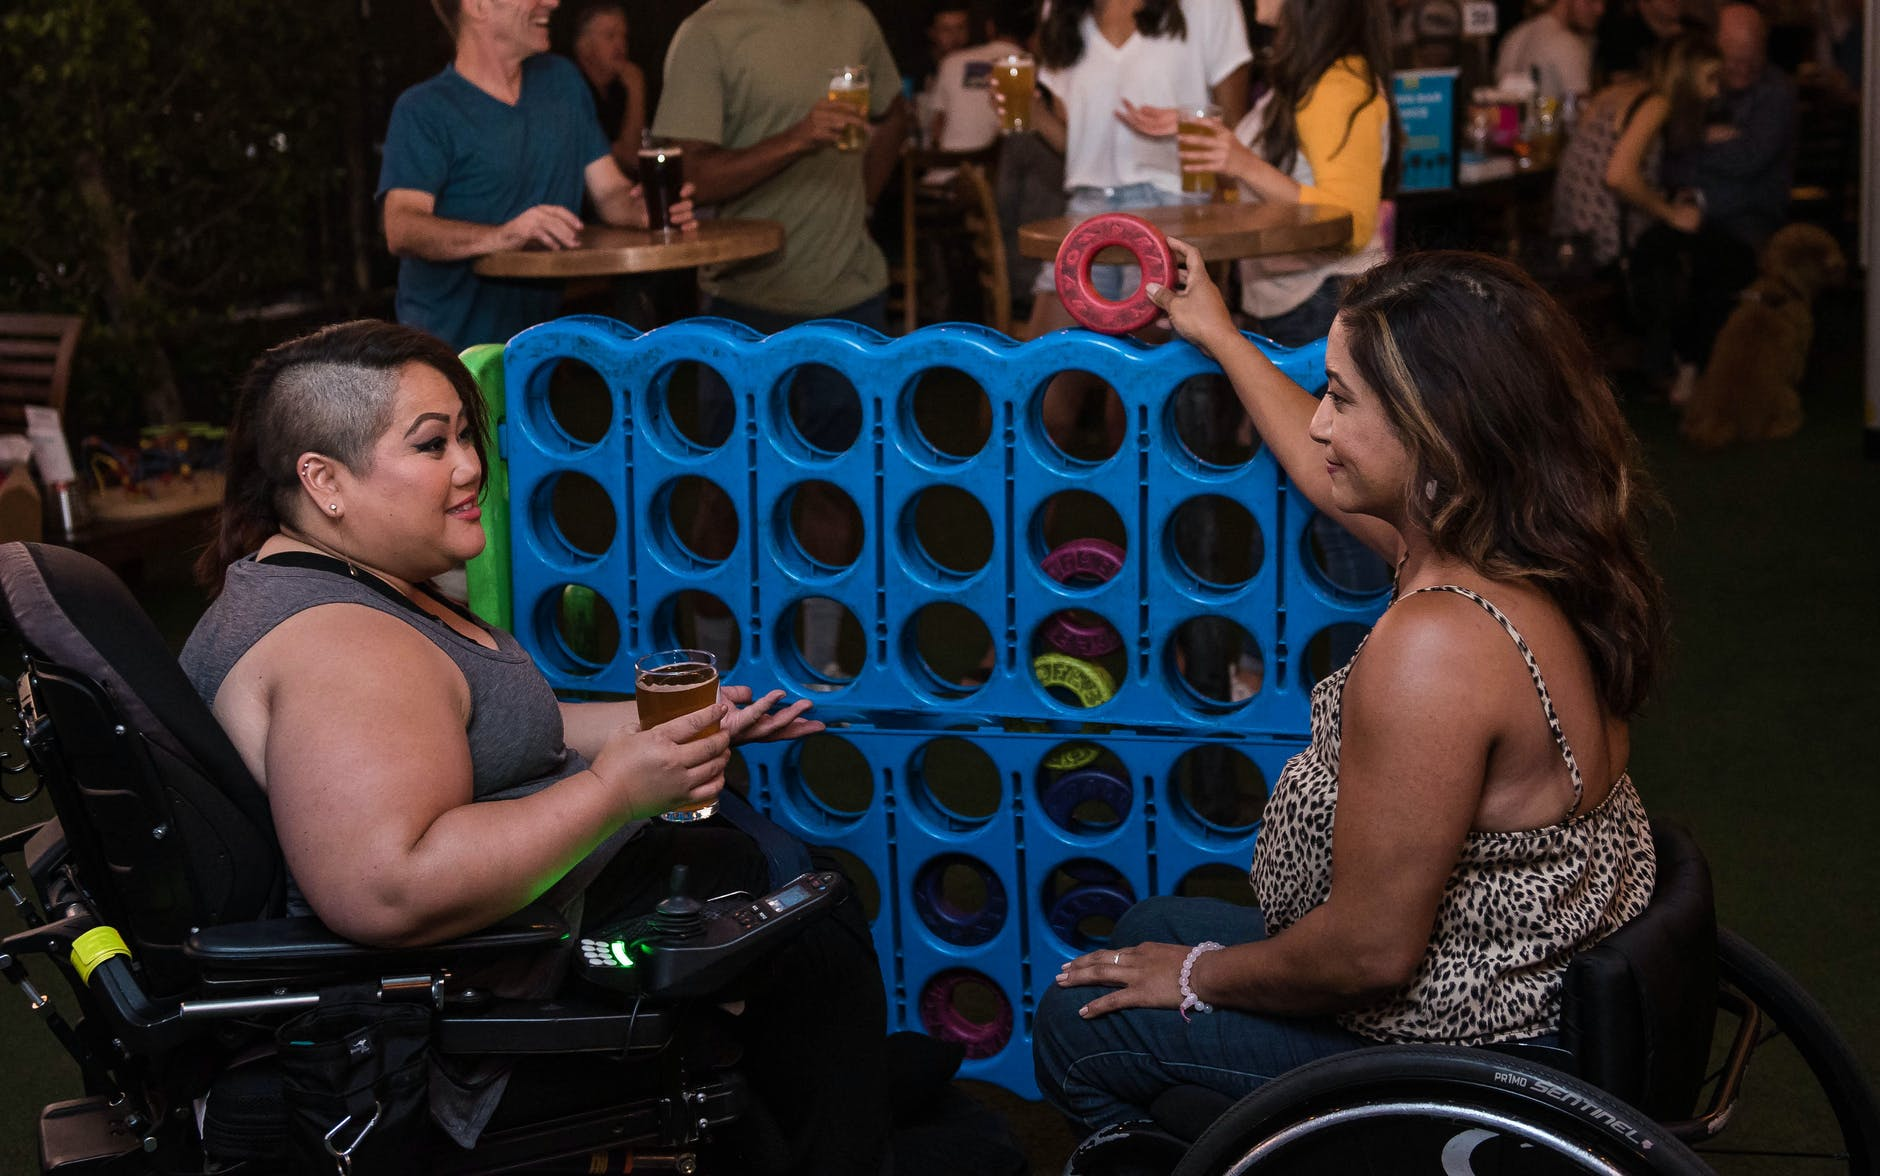 Two wheelchair users play giant Connect Four in a pub with friends.